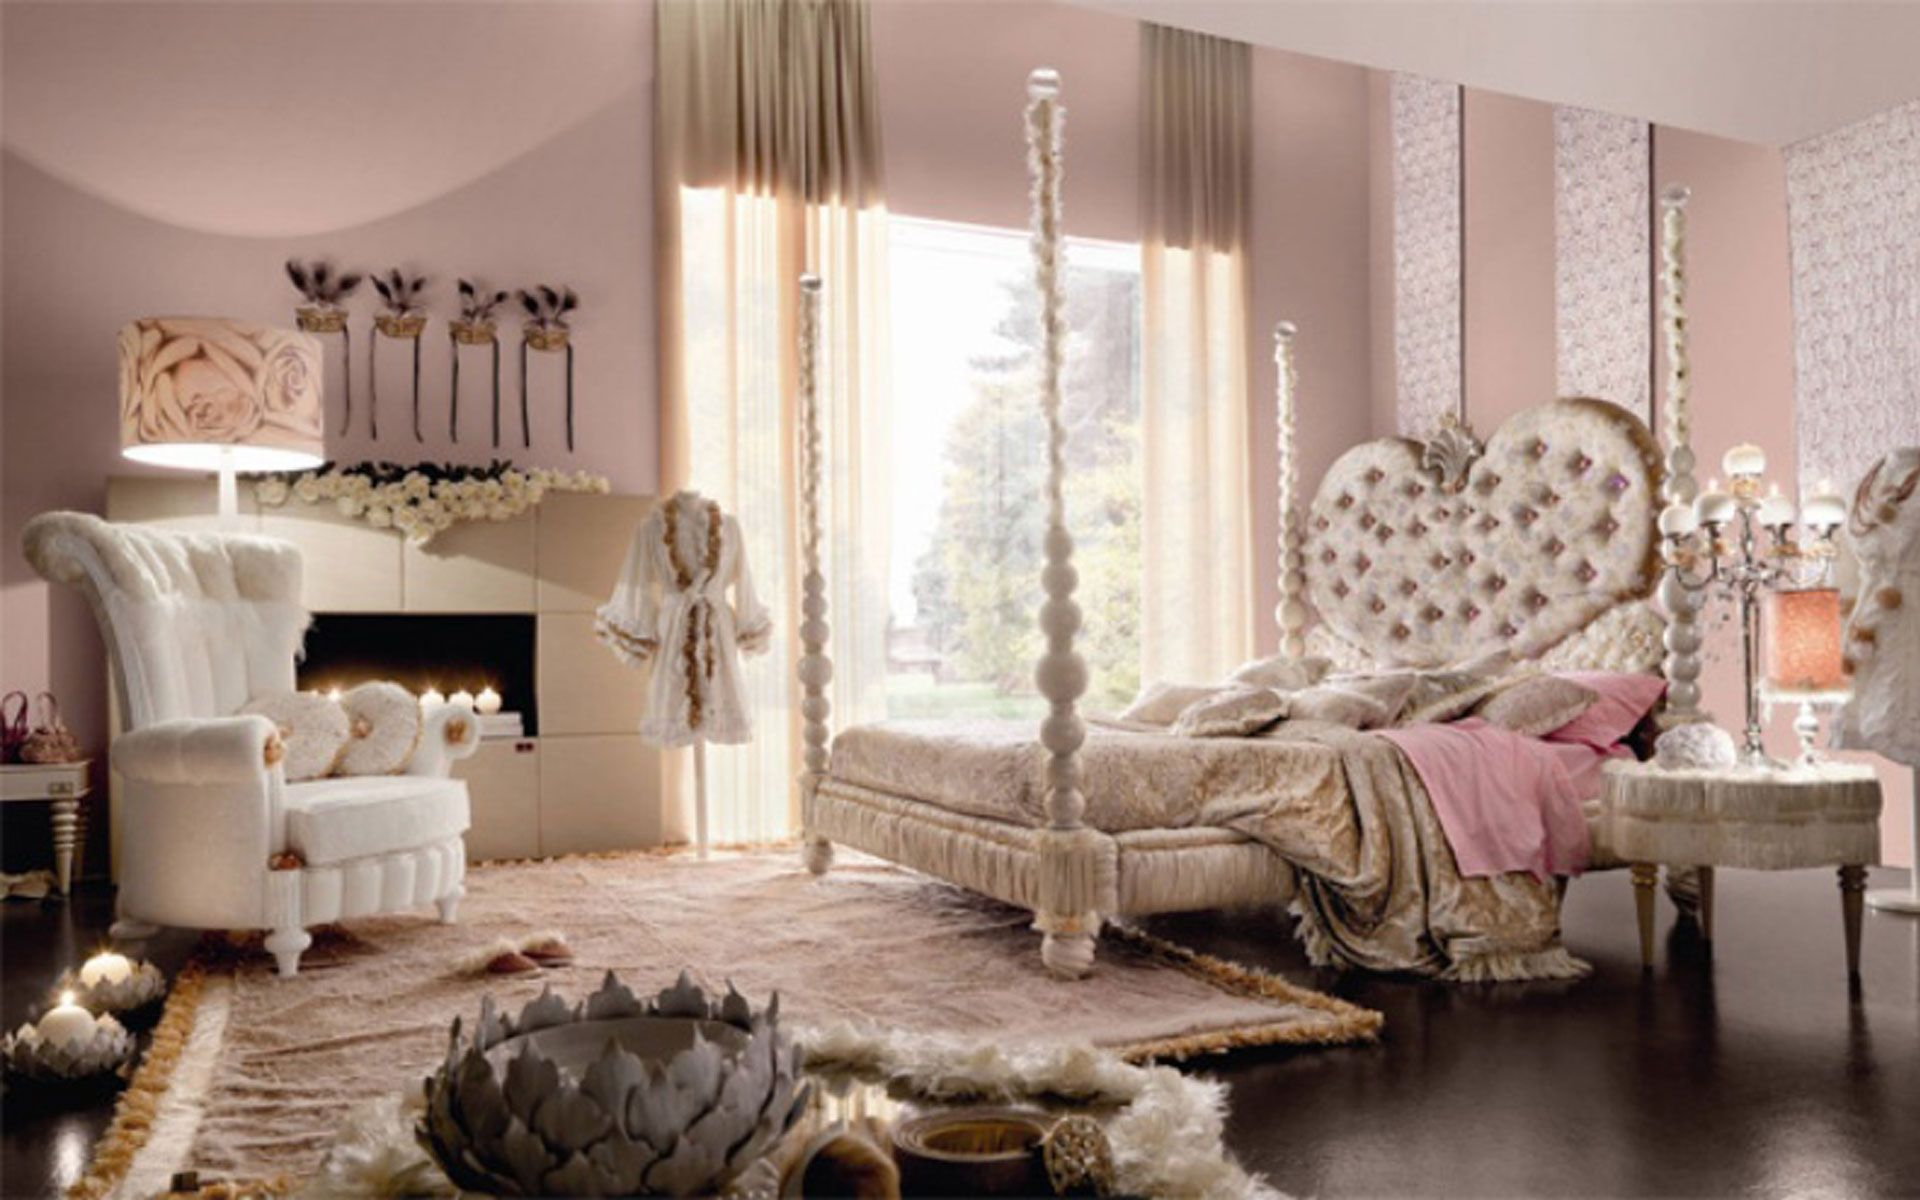 pretentious idea four post bed. Glamorous Girls Bedroom Decorating Idea with Charming Four Poster Bed Frame  and Tufted Heart Shaped Headboard